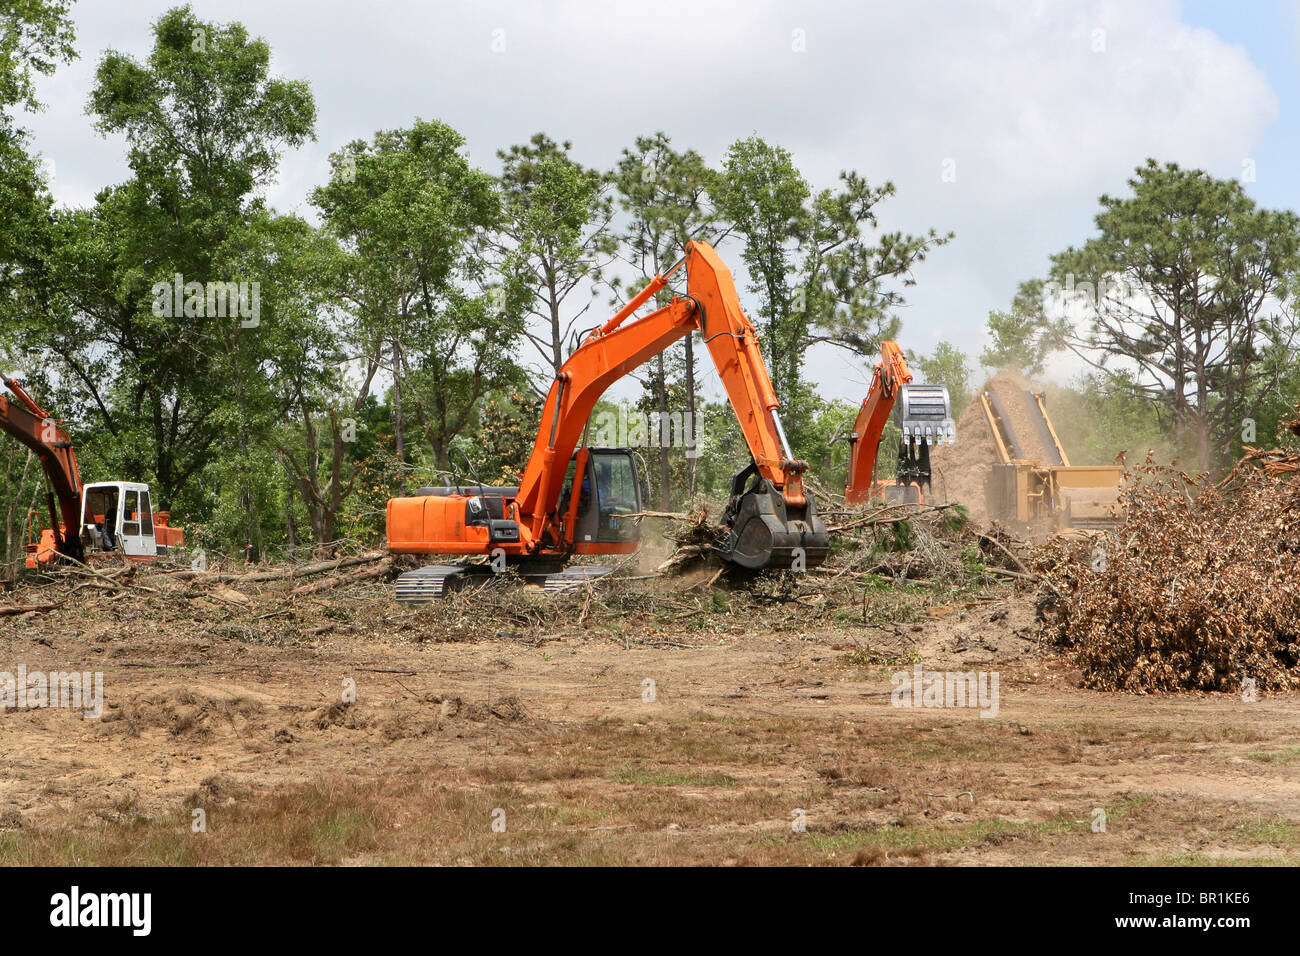 Backhoes operate clearing trees and brush from a construction site. - Stock Image